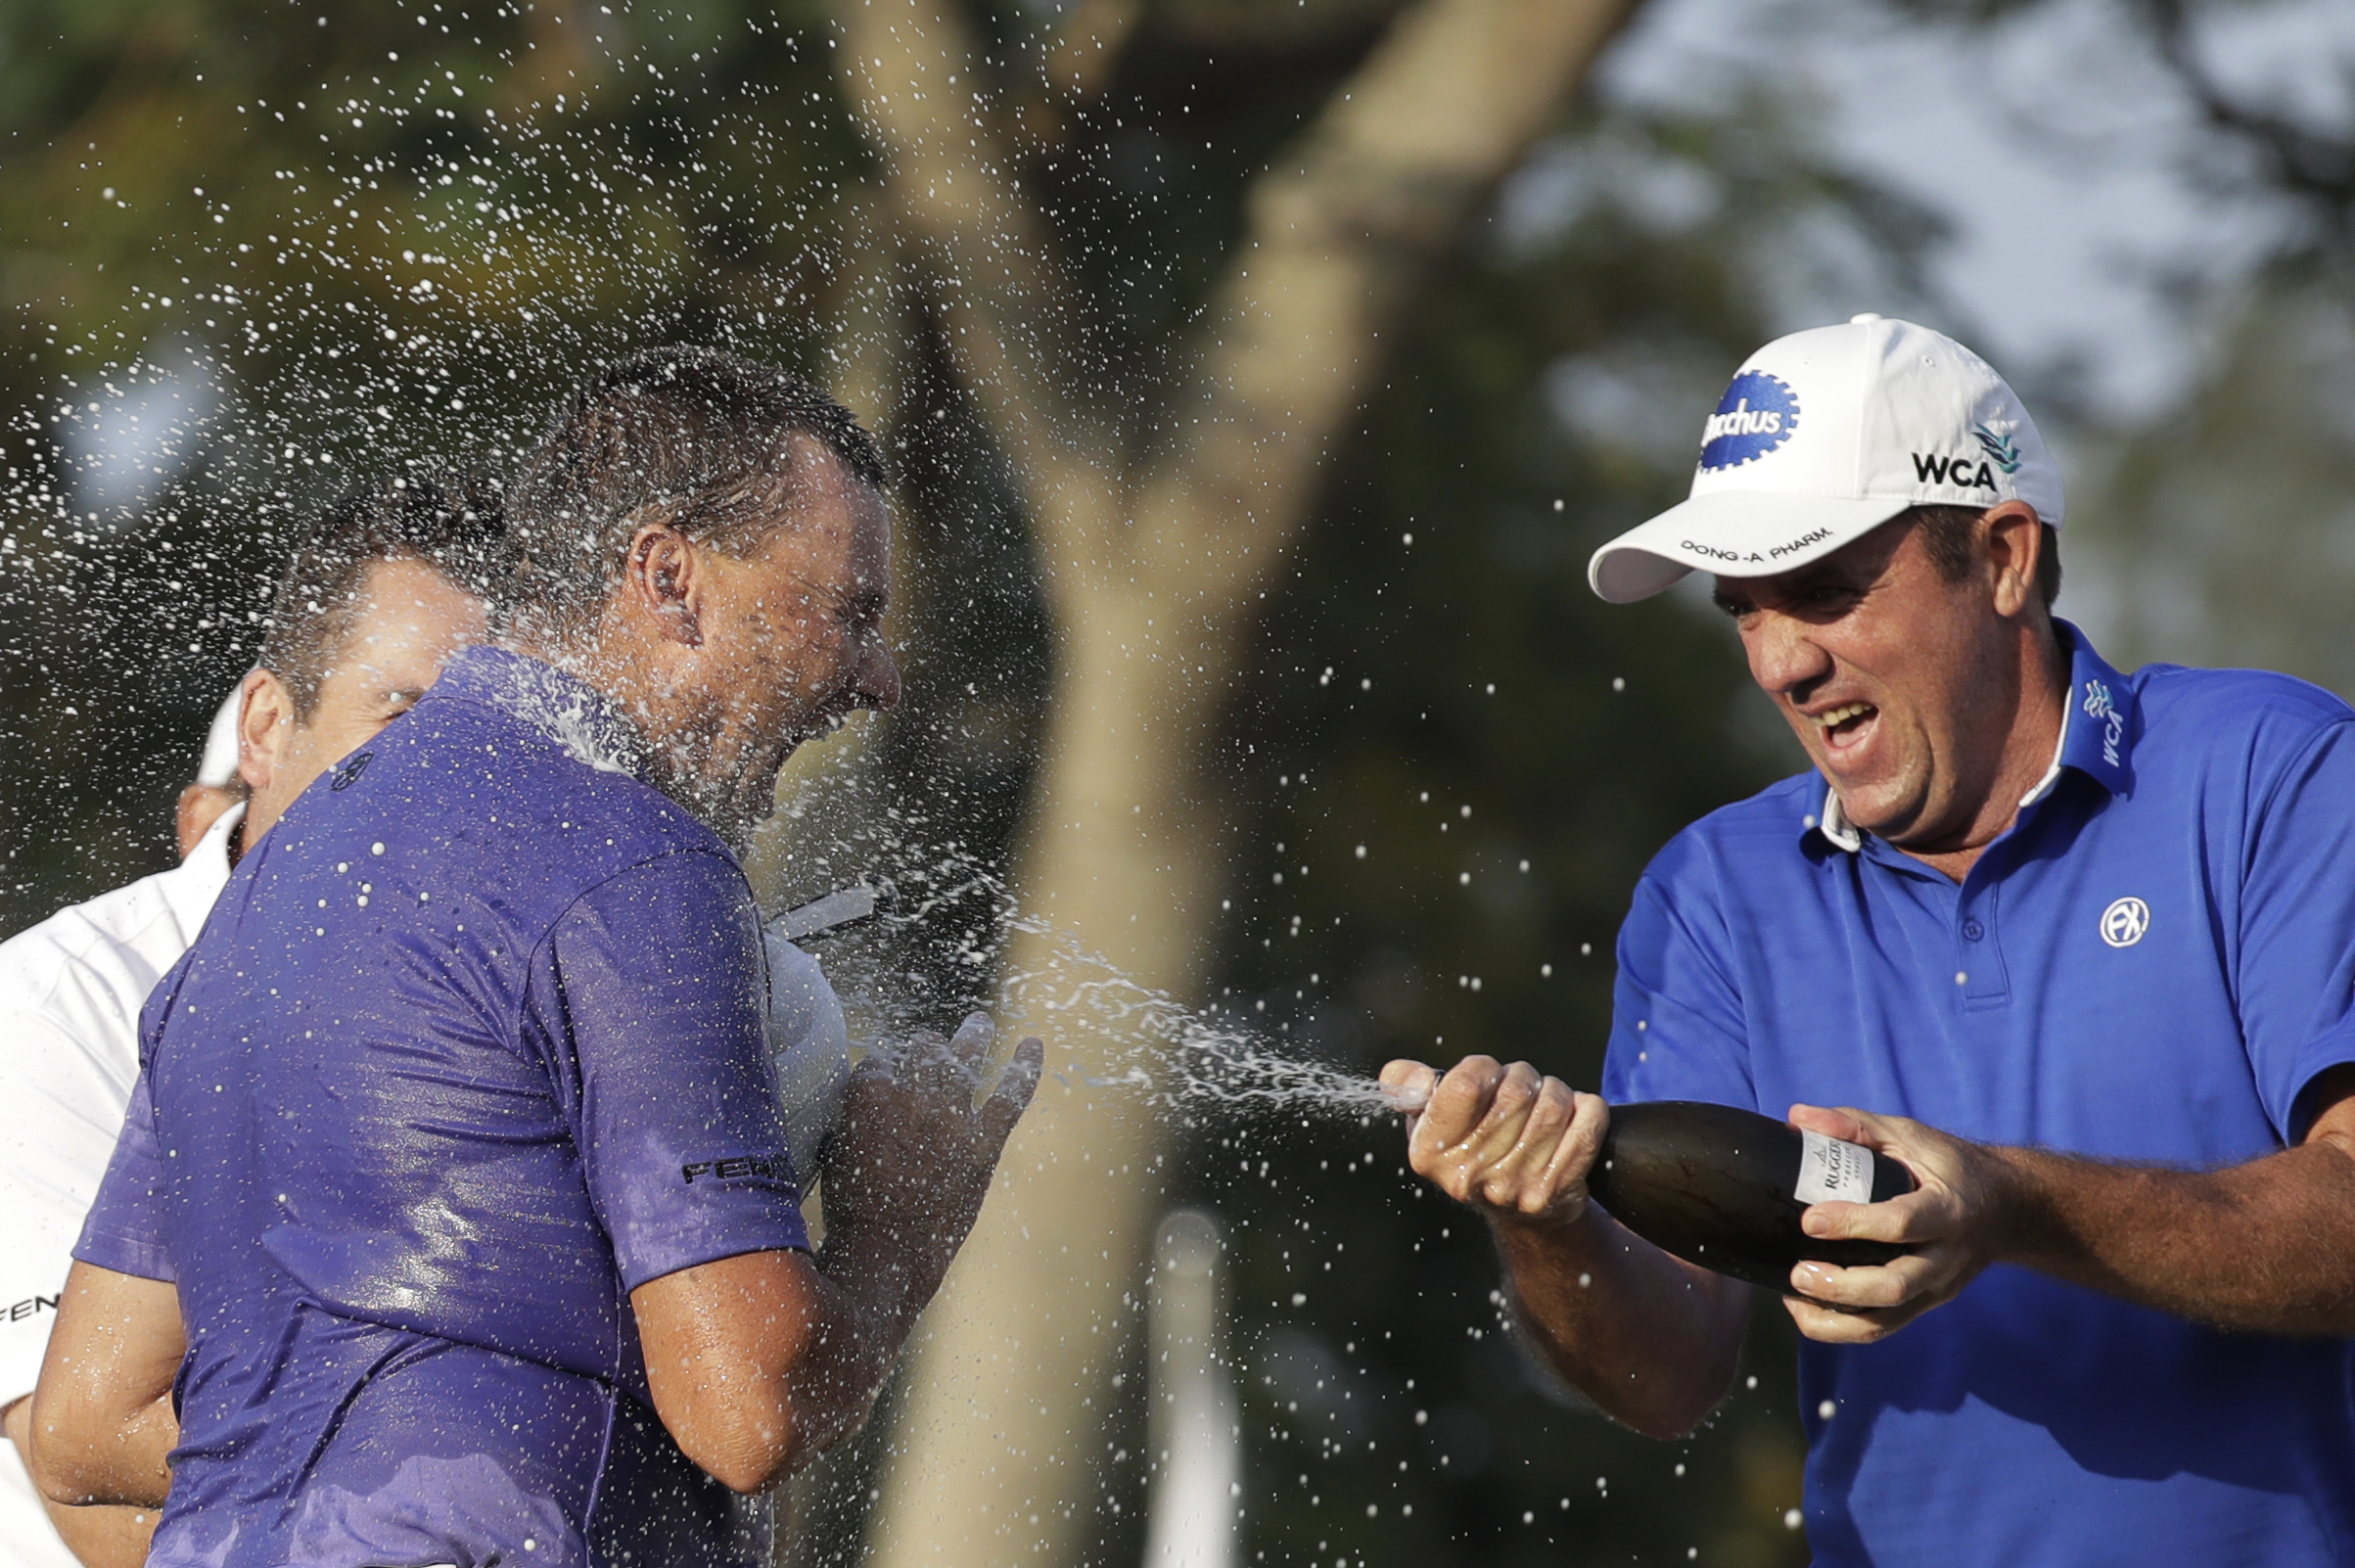 Australia's Sam Brazel, left, celebrates with his supporter after winning the Hong Kong Open golf tournament in Hong Kong, Sunday, Dec. 11, 2016. Brazel birdied the 18th hole to narrowly edge Rafa Cabrera Bello of Spain to capture the Hong Kong Open on Su